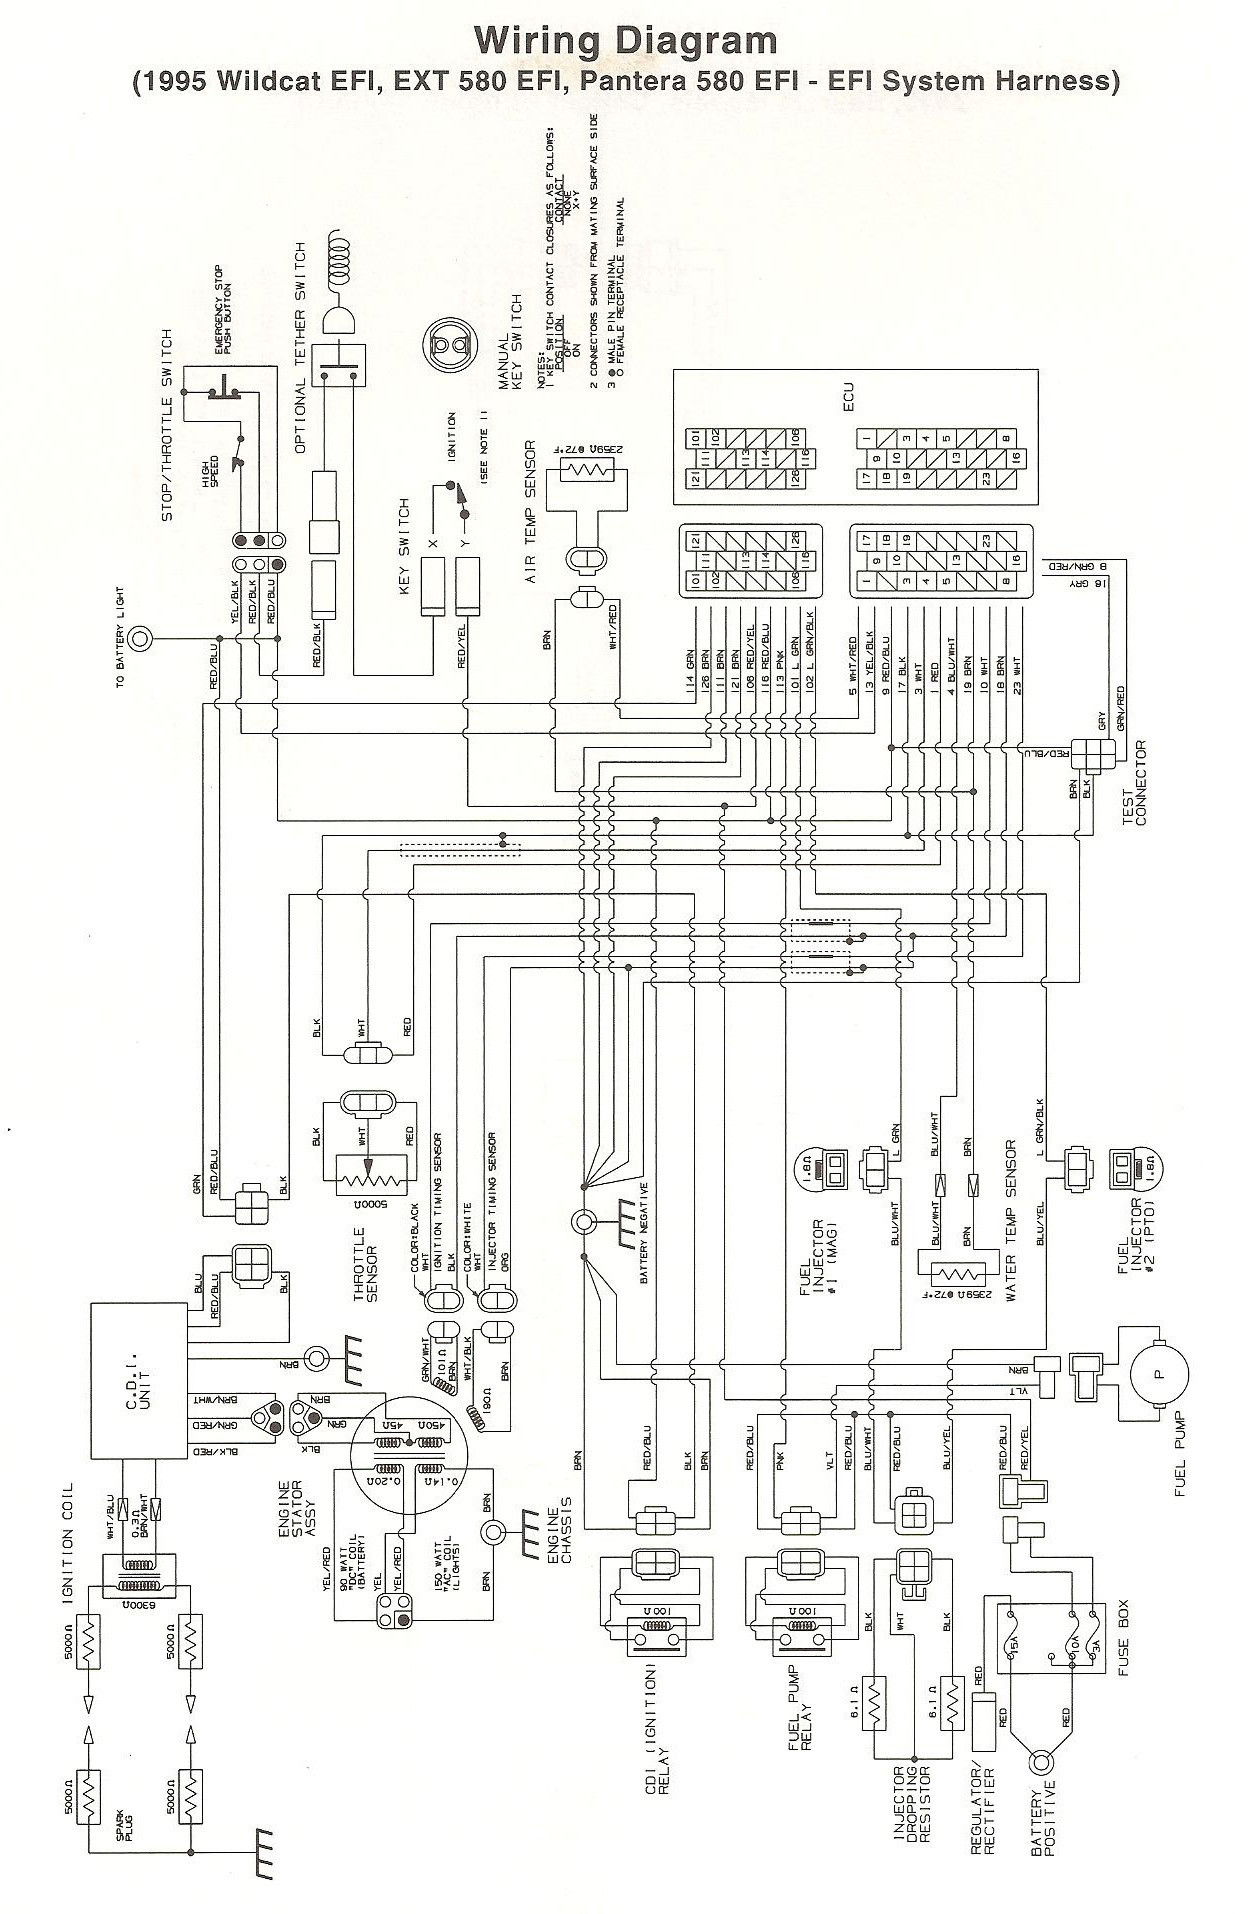 [ANLQ_8698]  DIAGRAM] 2005 Yamaha Rhino Wiring Diagram FULL Version HD Quality Wiring  Diagram - ASPOSEDIAGRAM.AGORASUP.FR | Rhino Wiring Diagram |  | Agora Sup